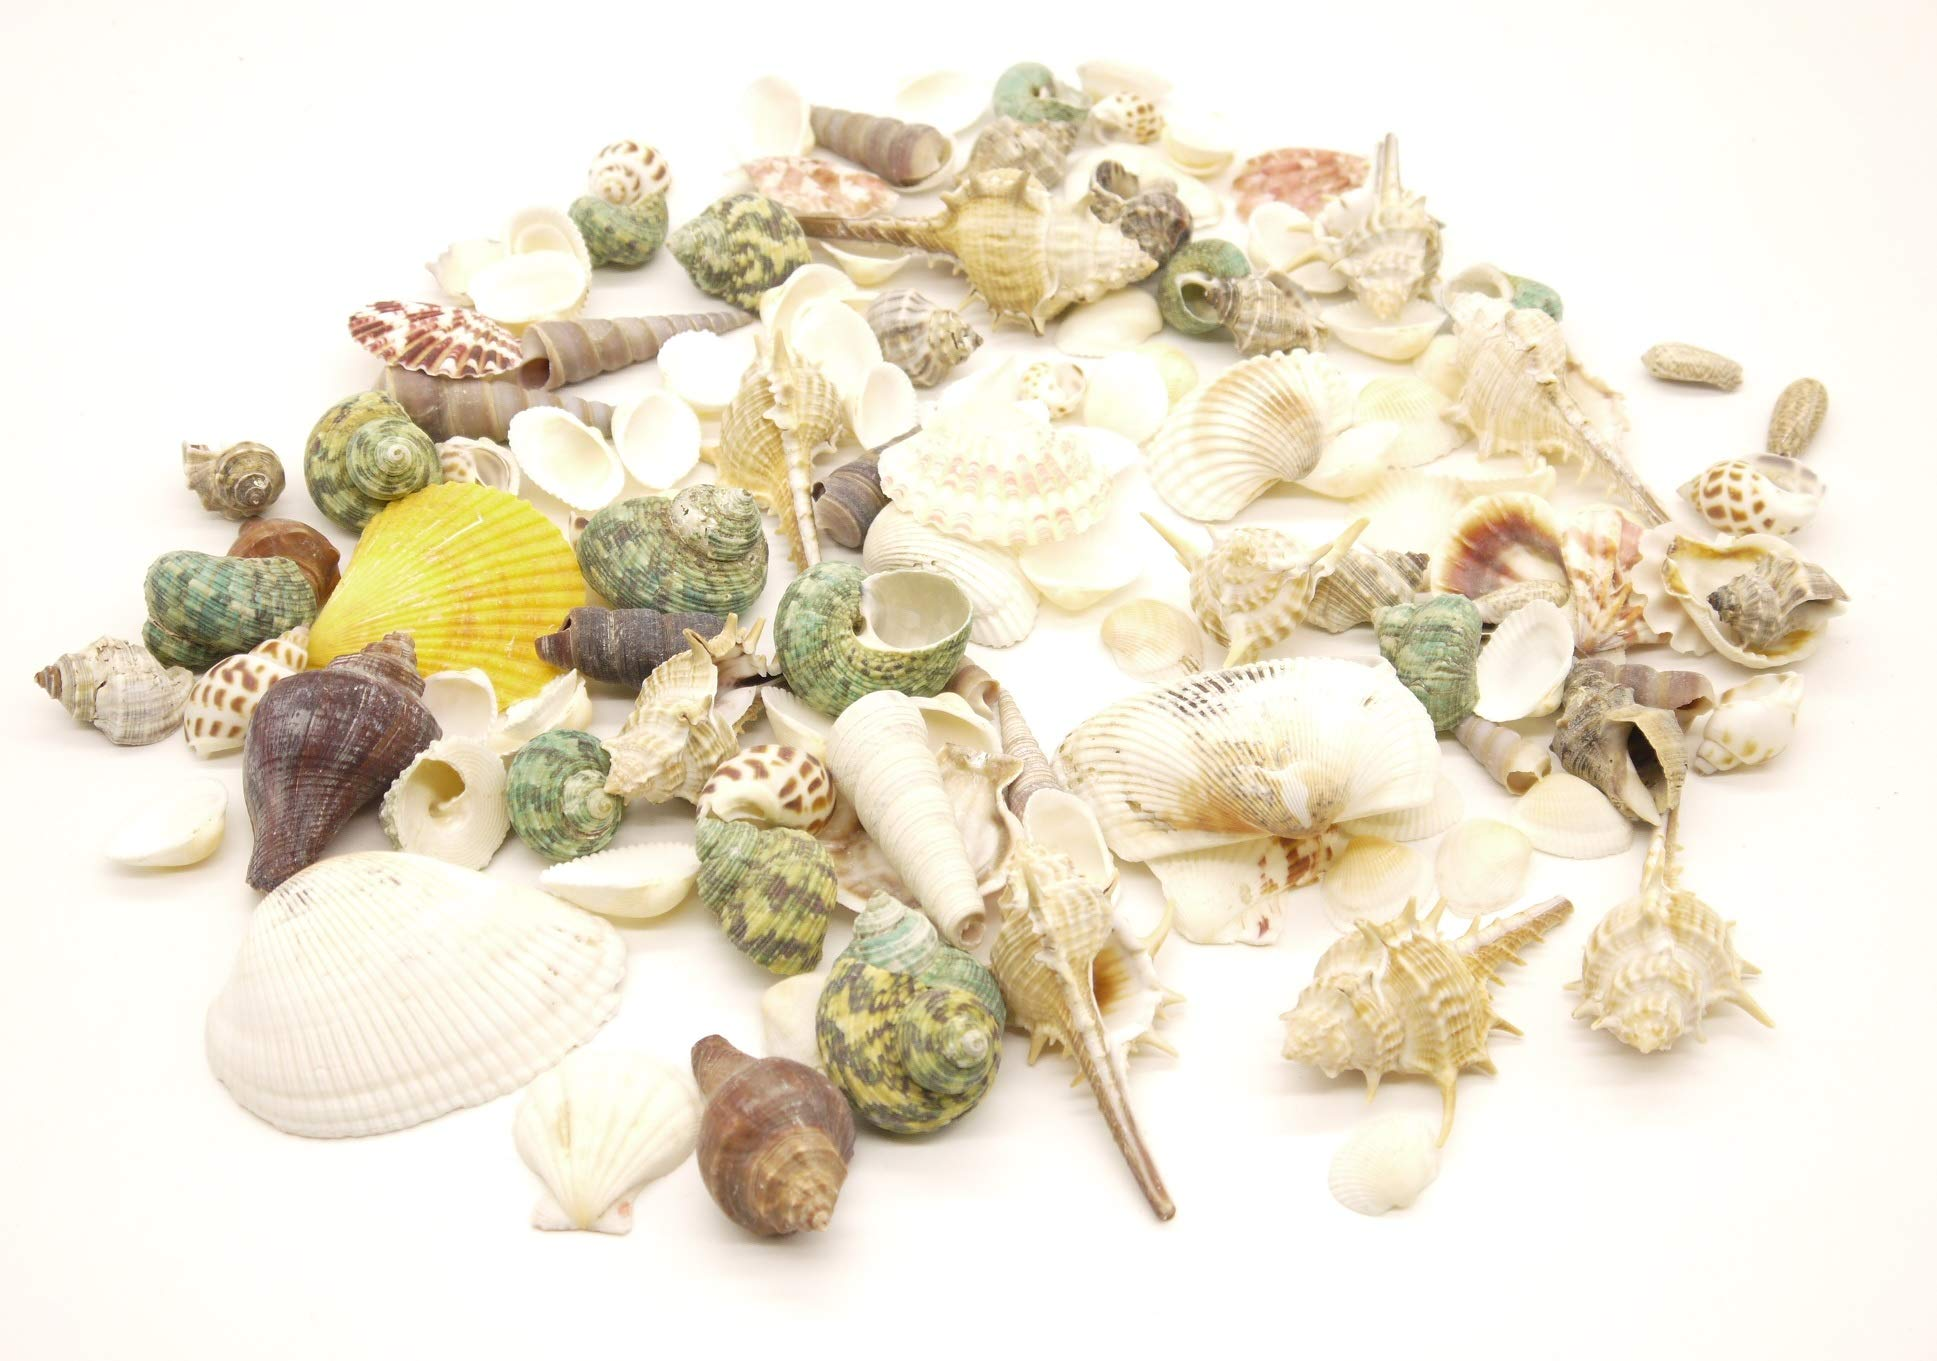 Sea Shells(17oz) 1''-3.5'' Mixed Ocean Beach Seashells-Natural for Candle Making,Home Decorations, Beach Theme Party Wedding Decor, DIY Crafts, Fish Tank and Vase Fillers